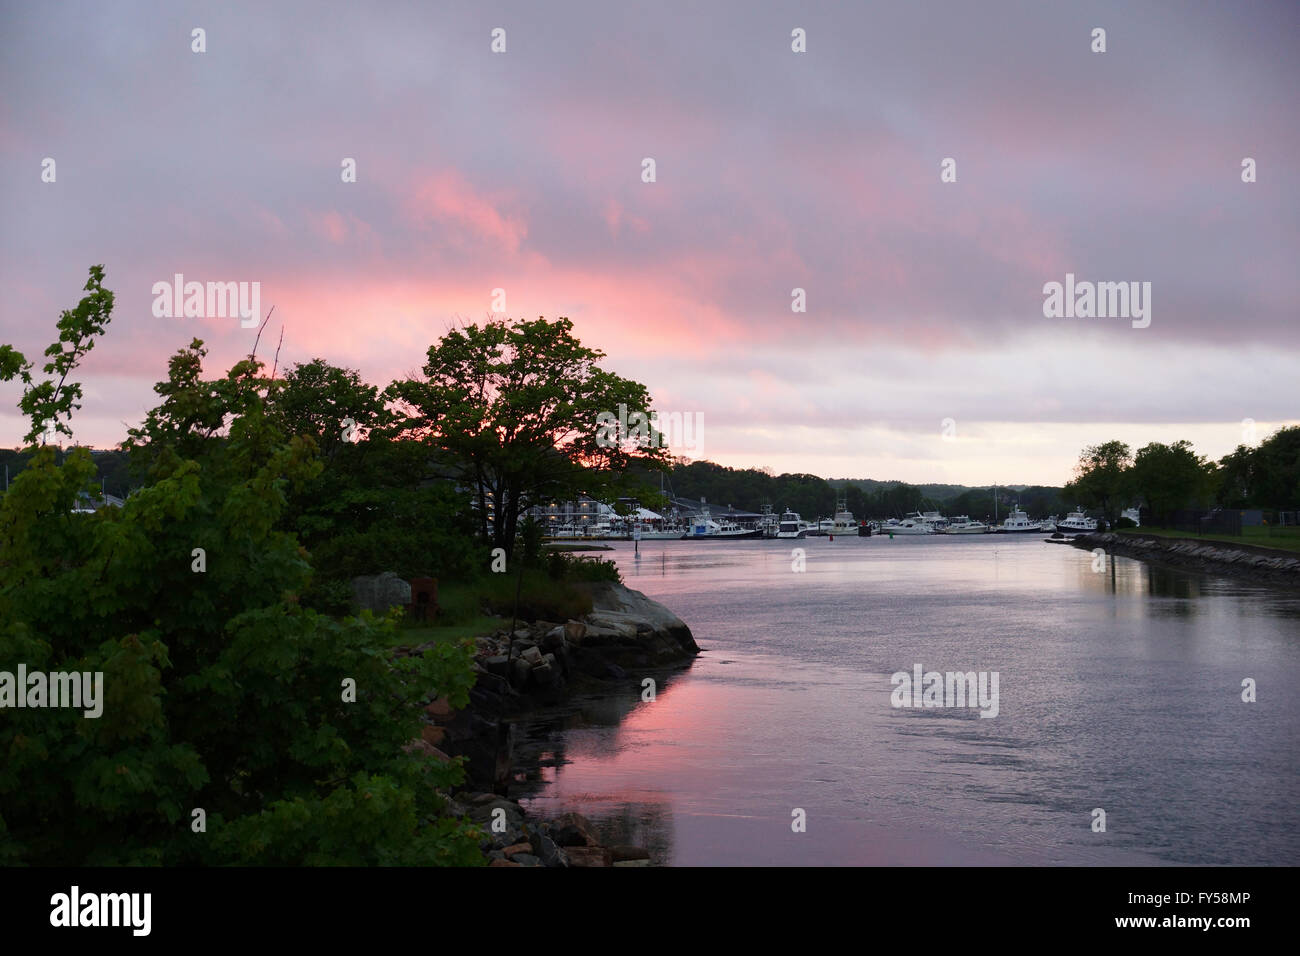 Sunset light shines over Blynman Canal reflects on the water with boats and buildings with trees behind them in - Stock Image